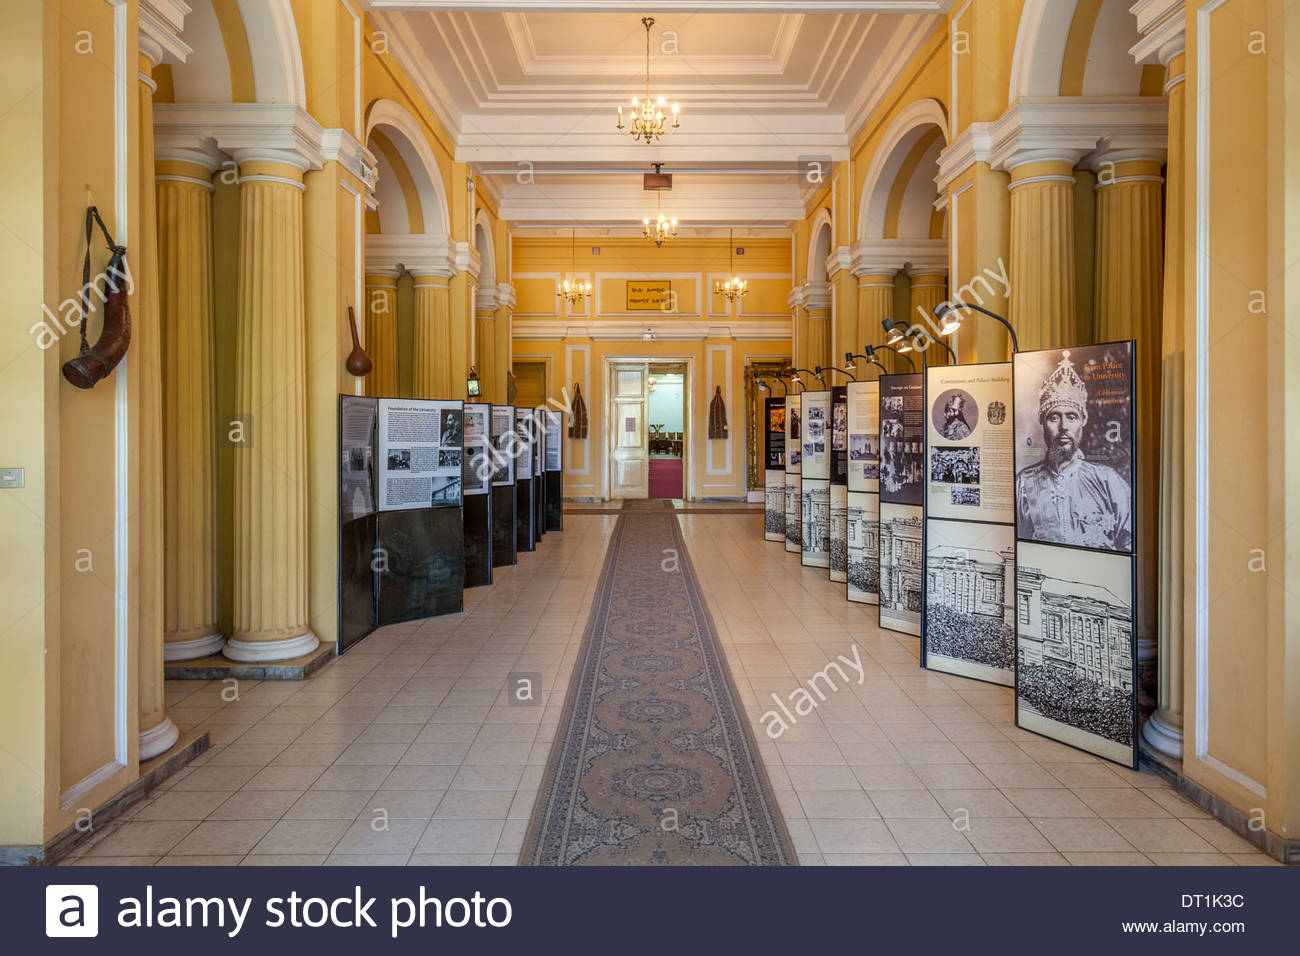 Ethnological Museum Addis Ababa, The Ethnological Museum, Addis Ababa, Ethiopia Stock Photo ...